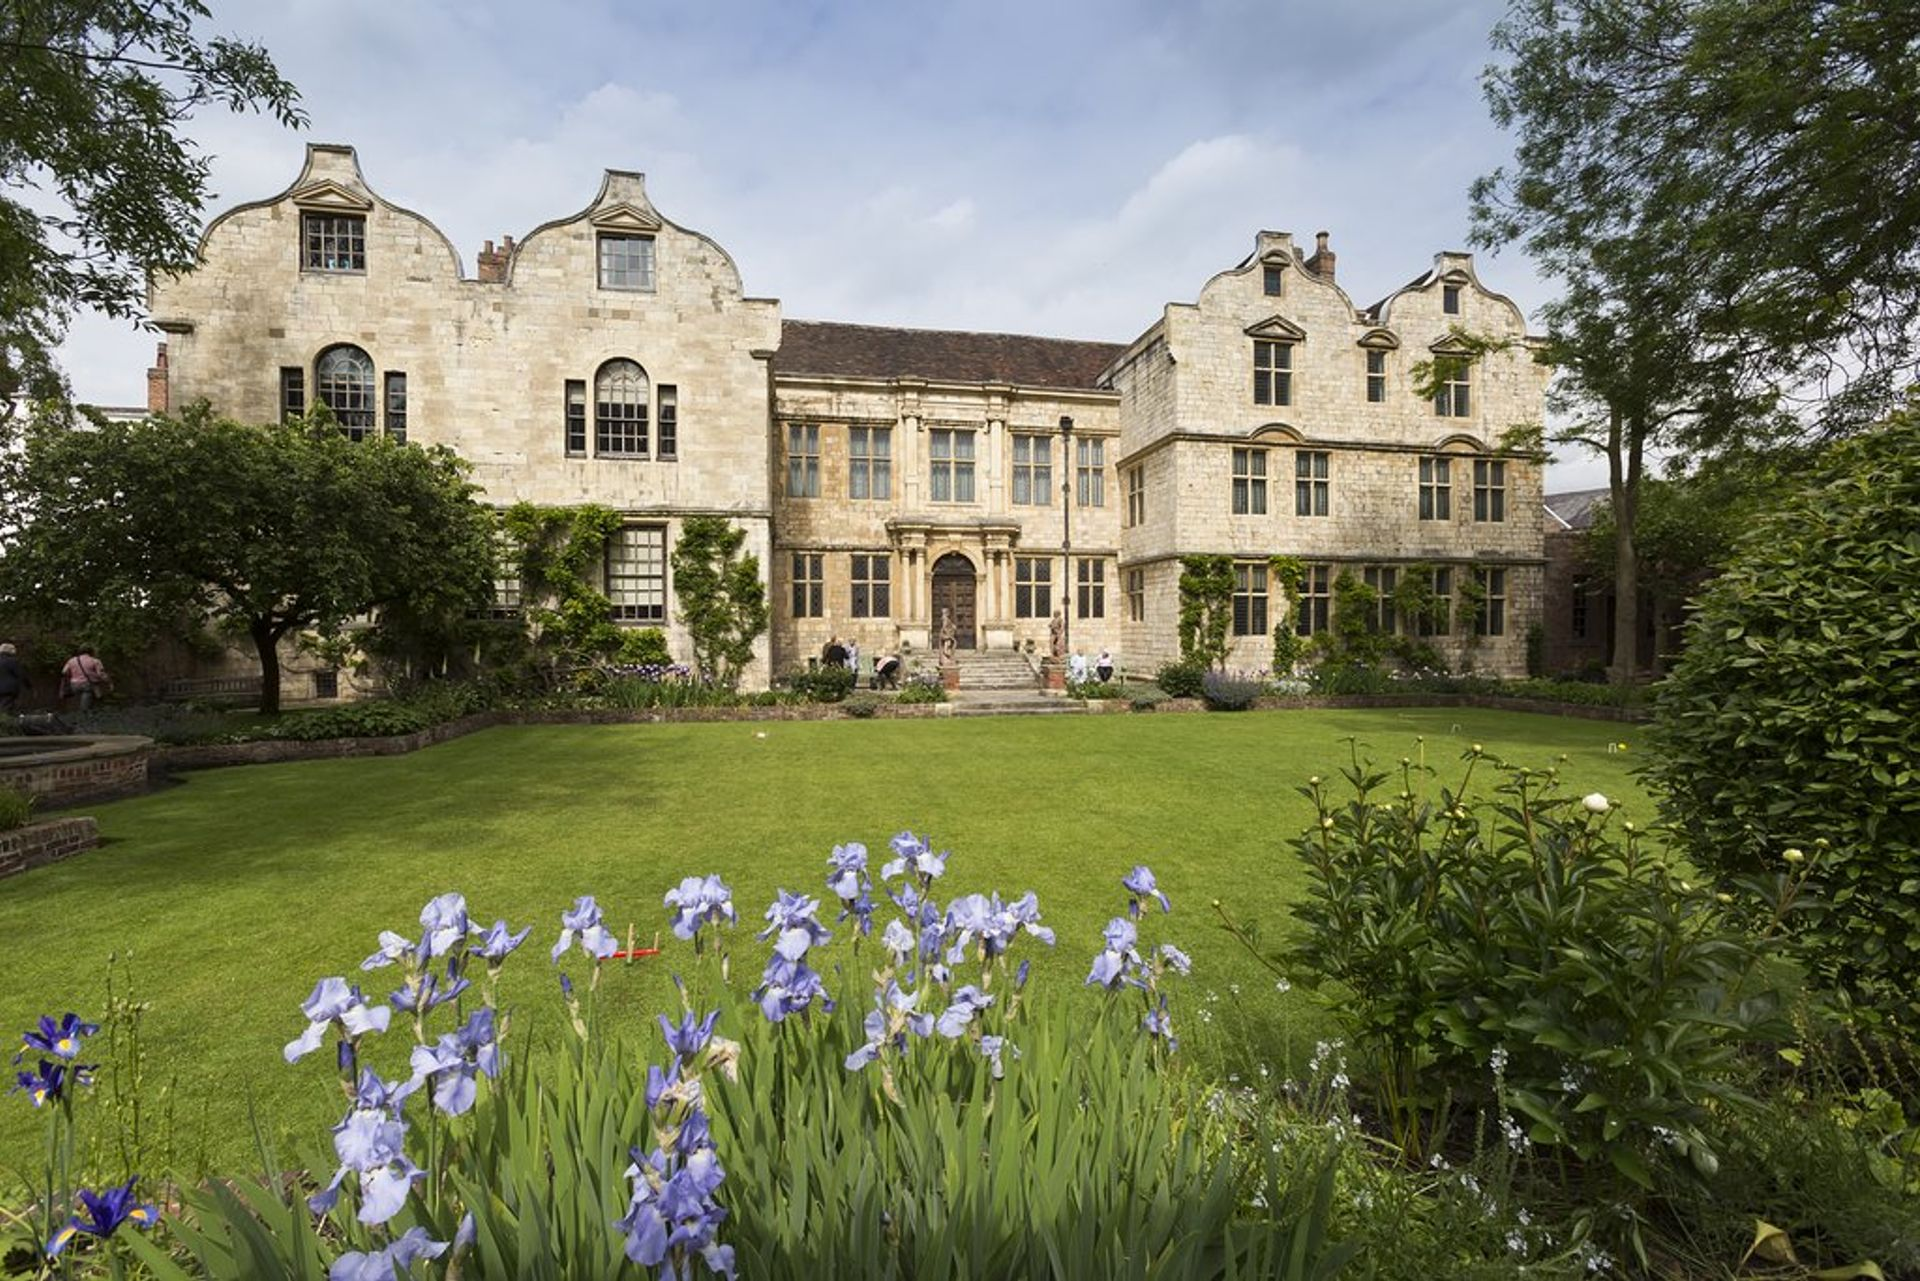 Treasurer's House in York was gifted to the National Trust by the industrialist Frank Green in 1930 National Trust